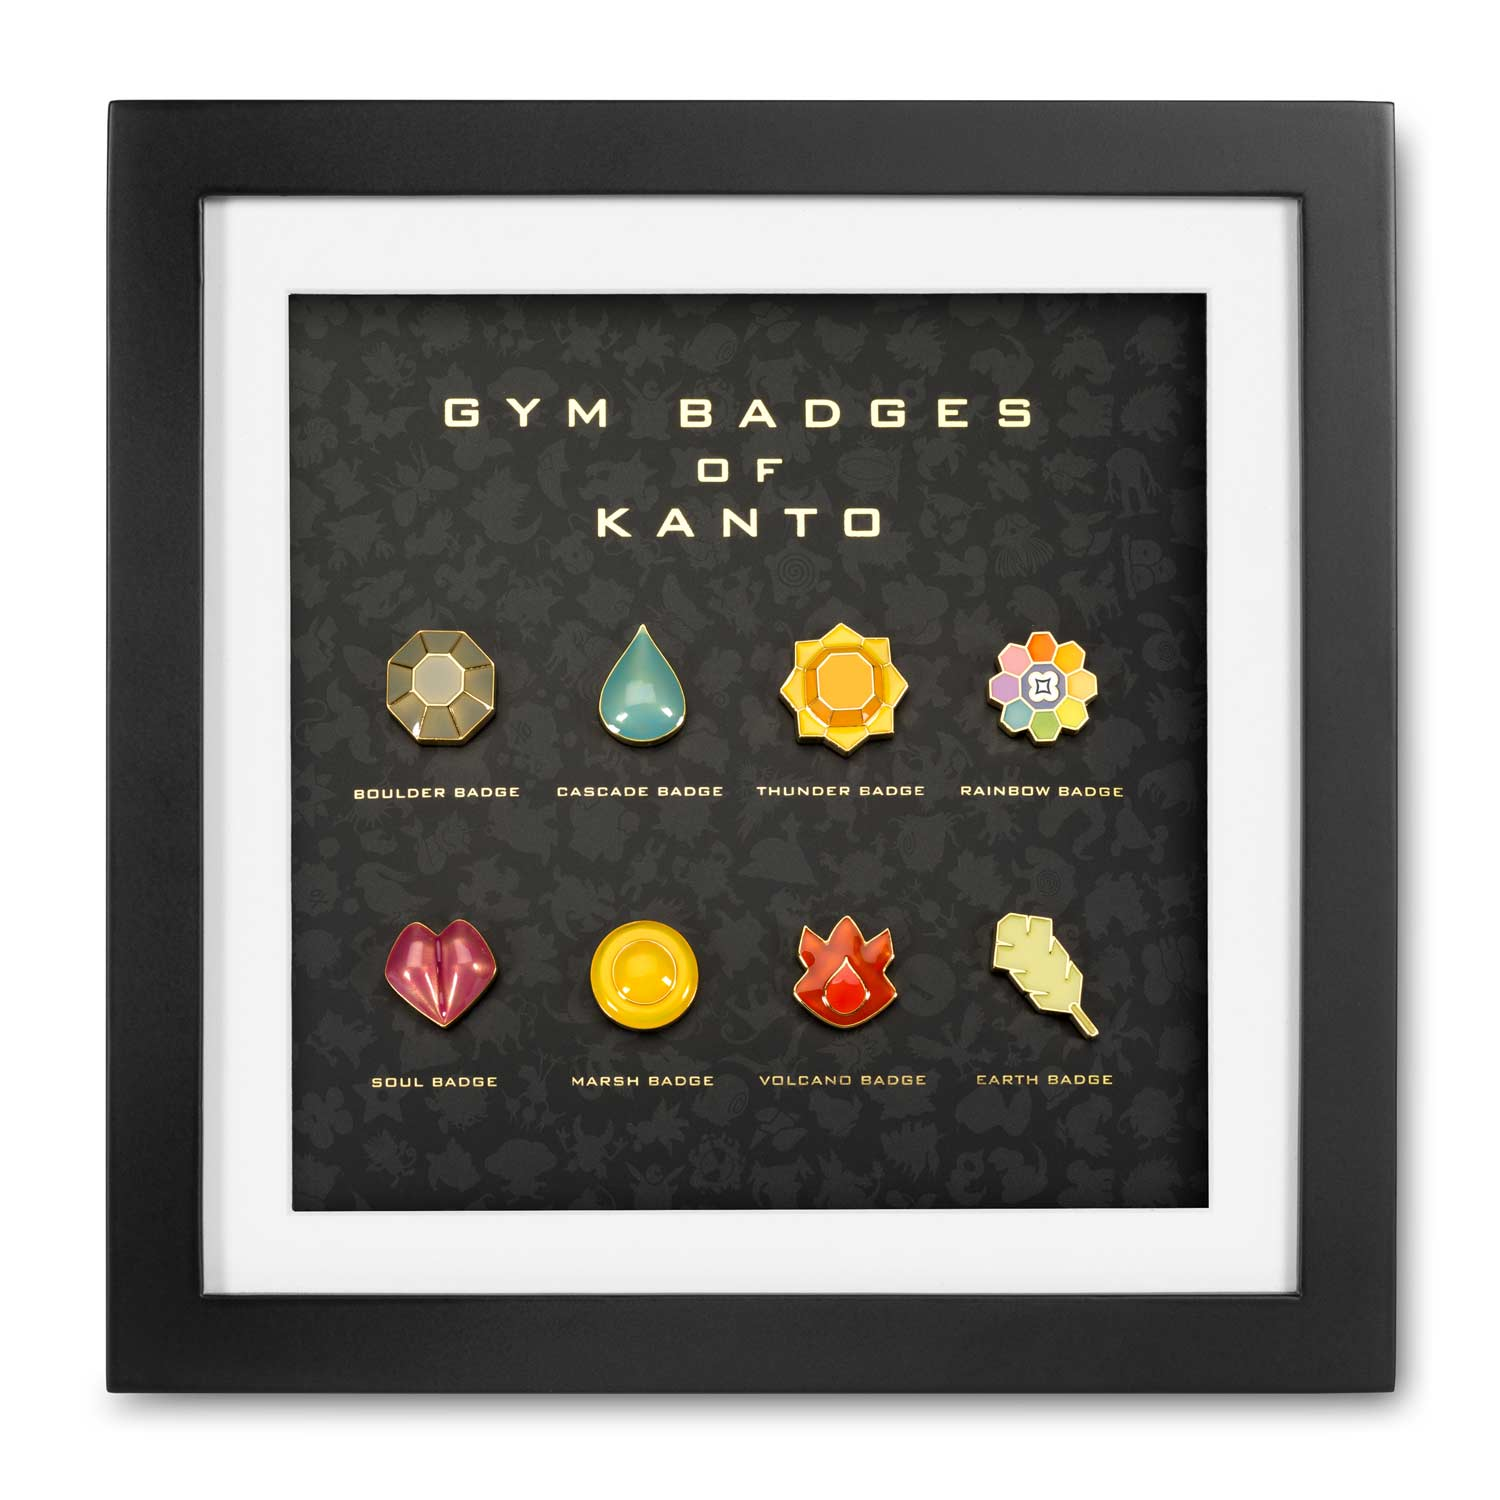 Kanto Premium Gym Badge Set